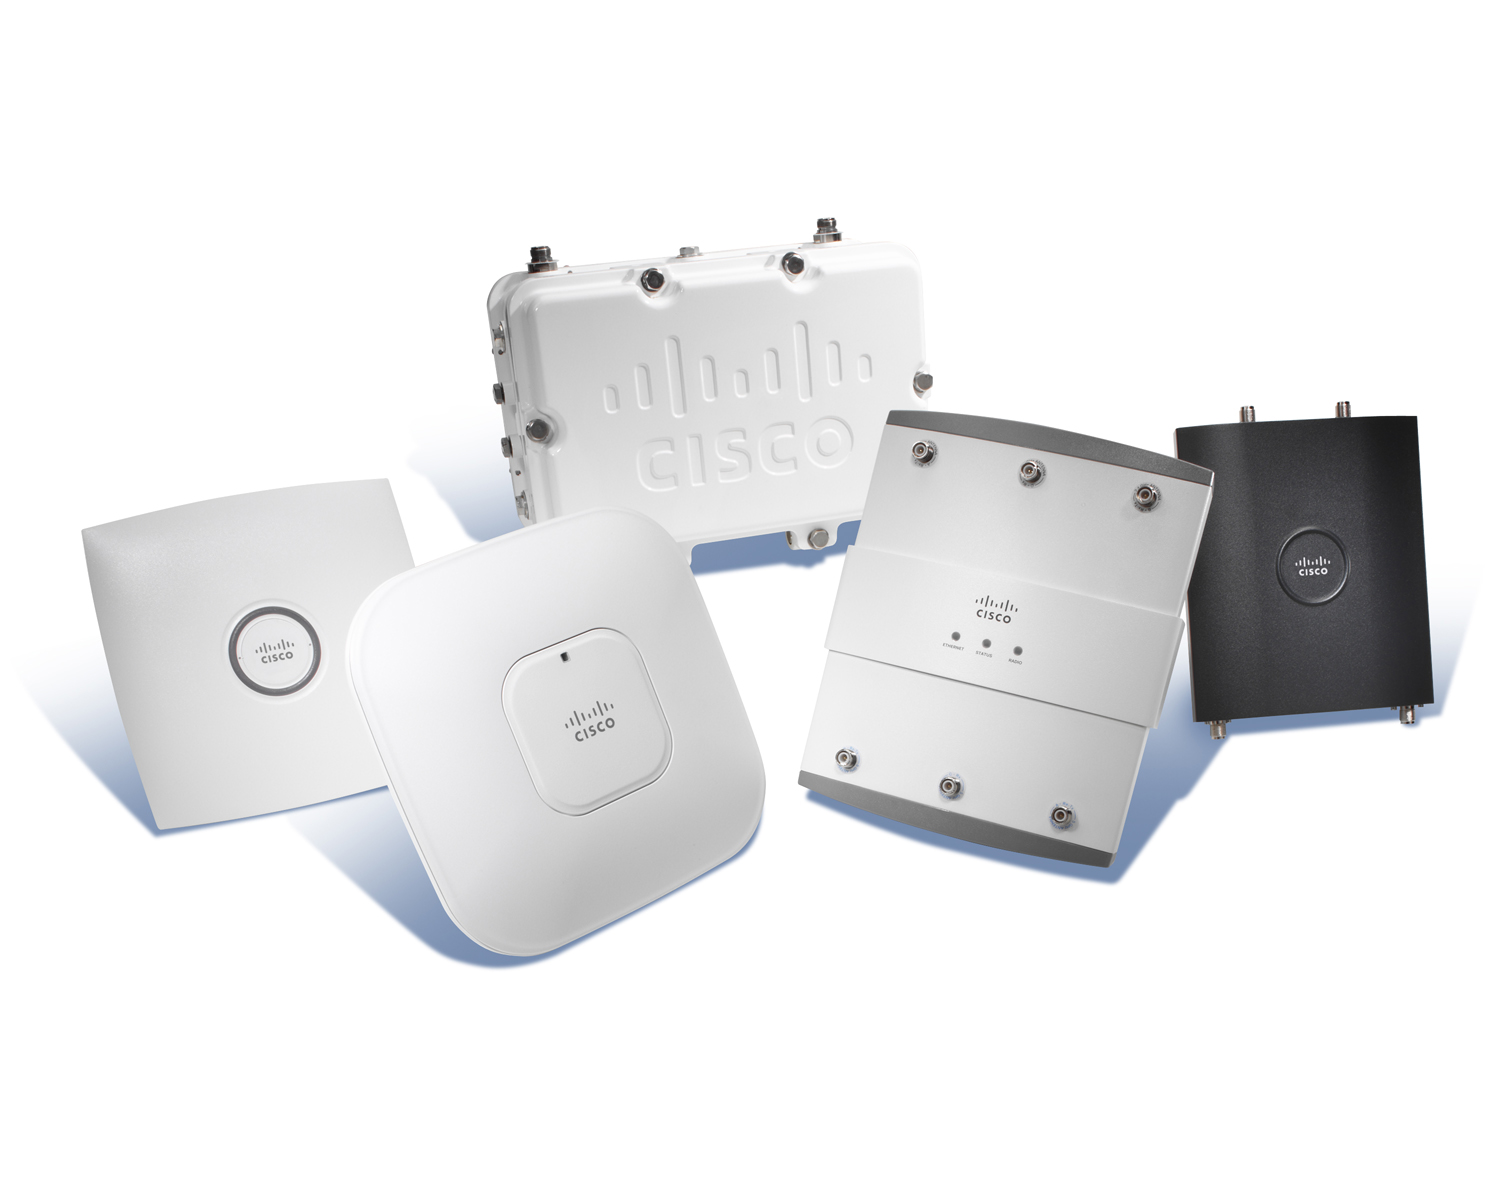 Cisco Aironet Family of Wireless Access Points: AP1130, 1140, 1242, 1250, 1500